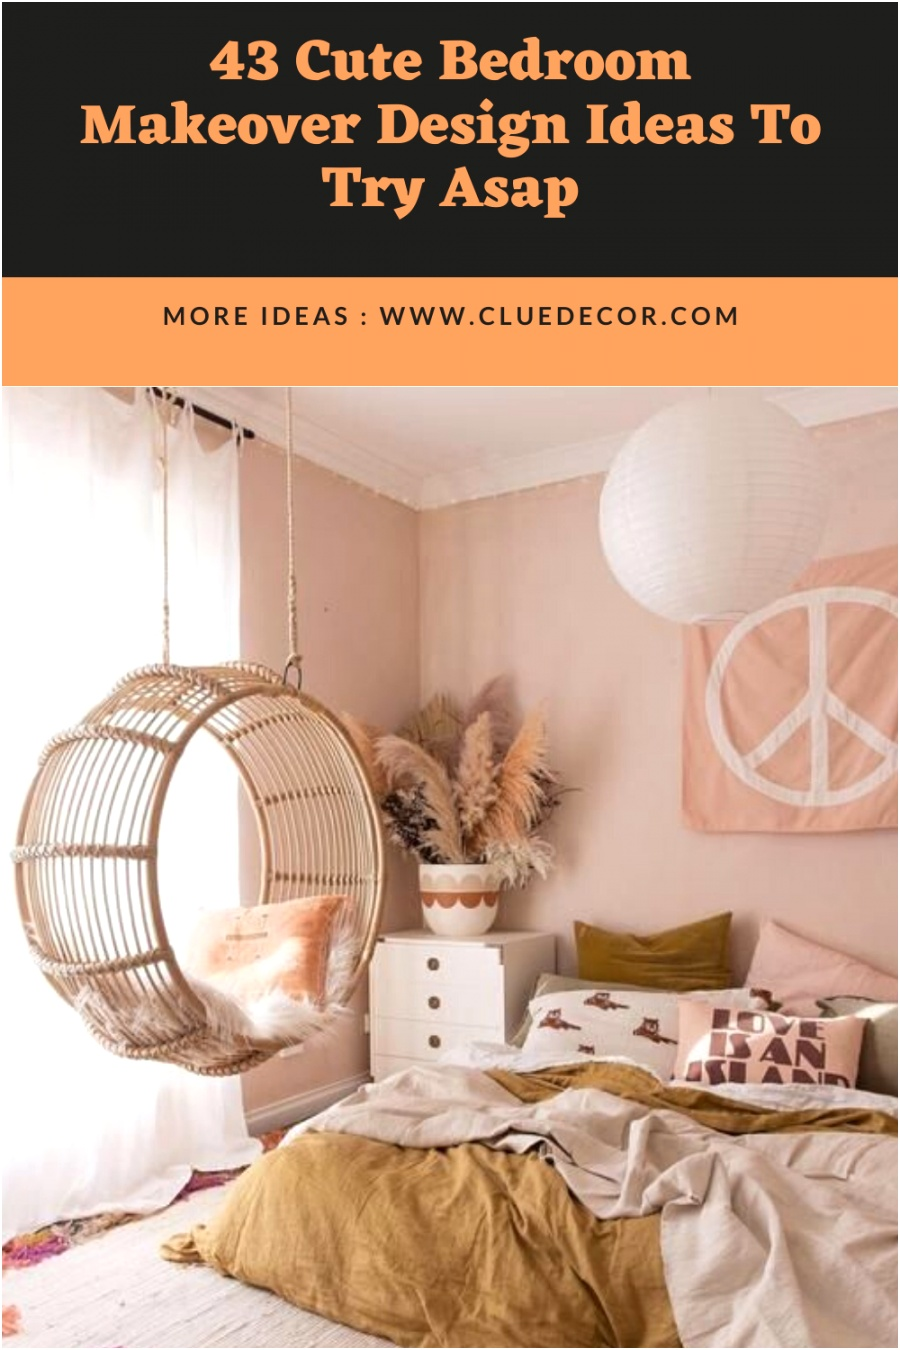 43 Cute Bedroom Makeover Design Ideas To Try Asap